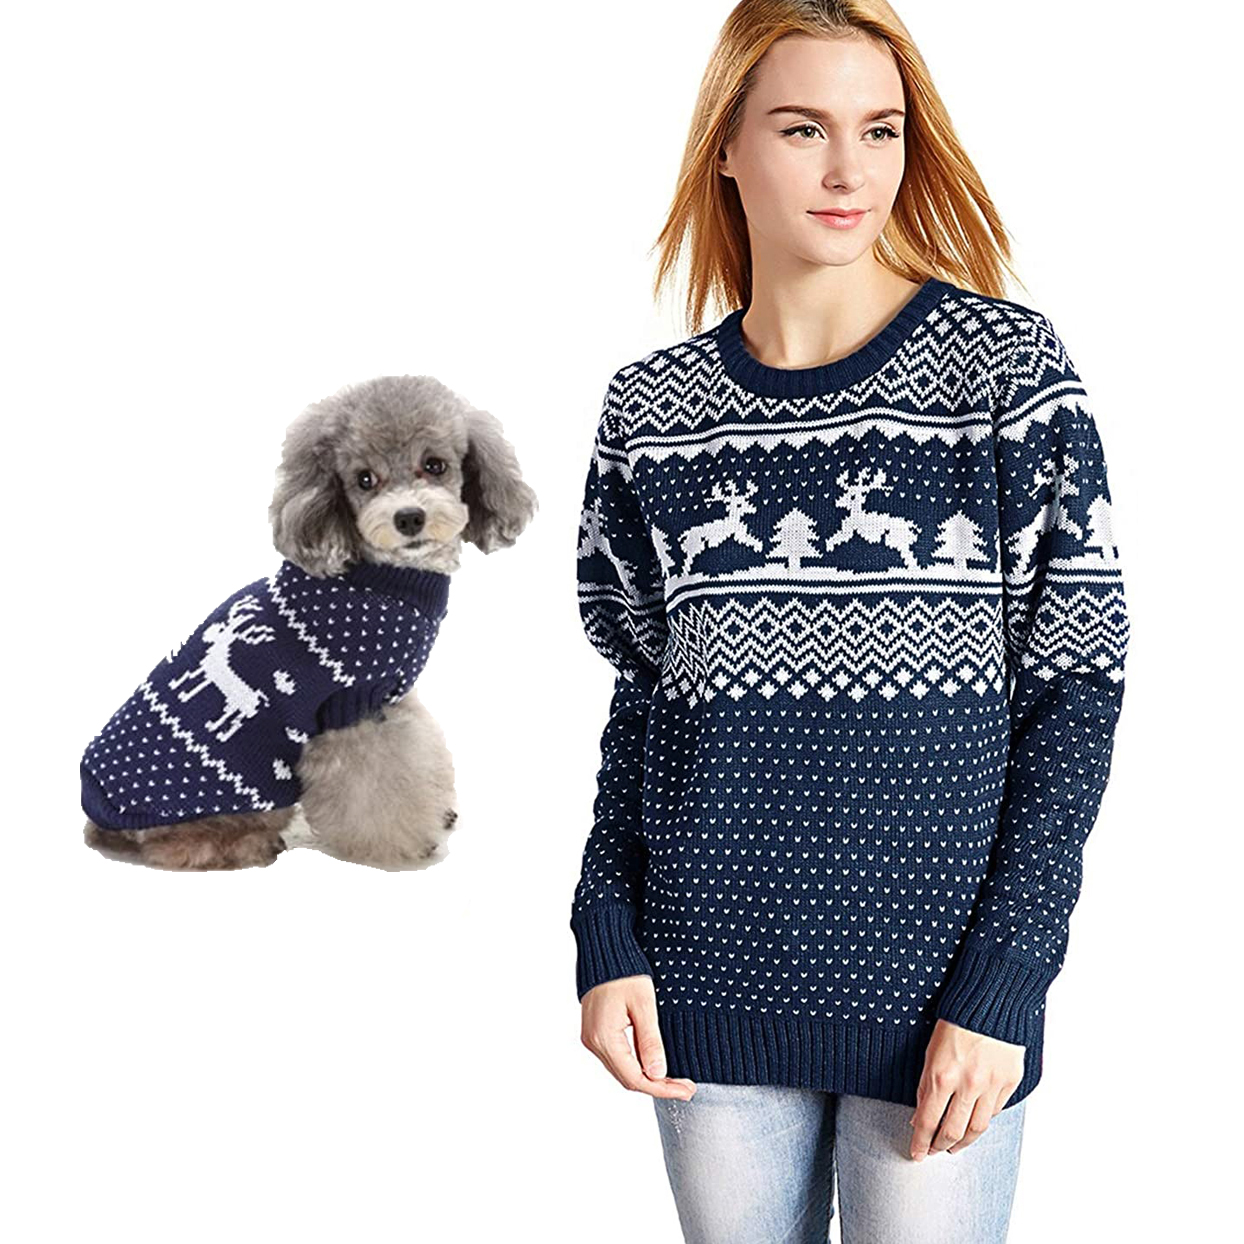 navy-reindeer-matching-sweaters